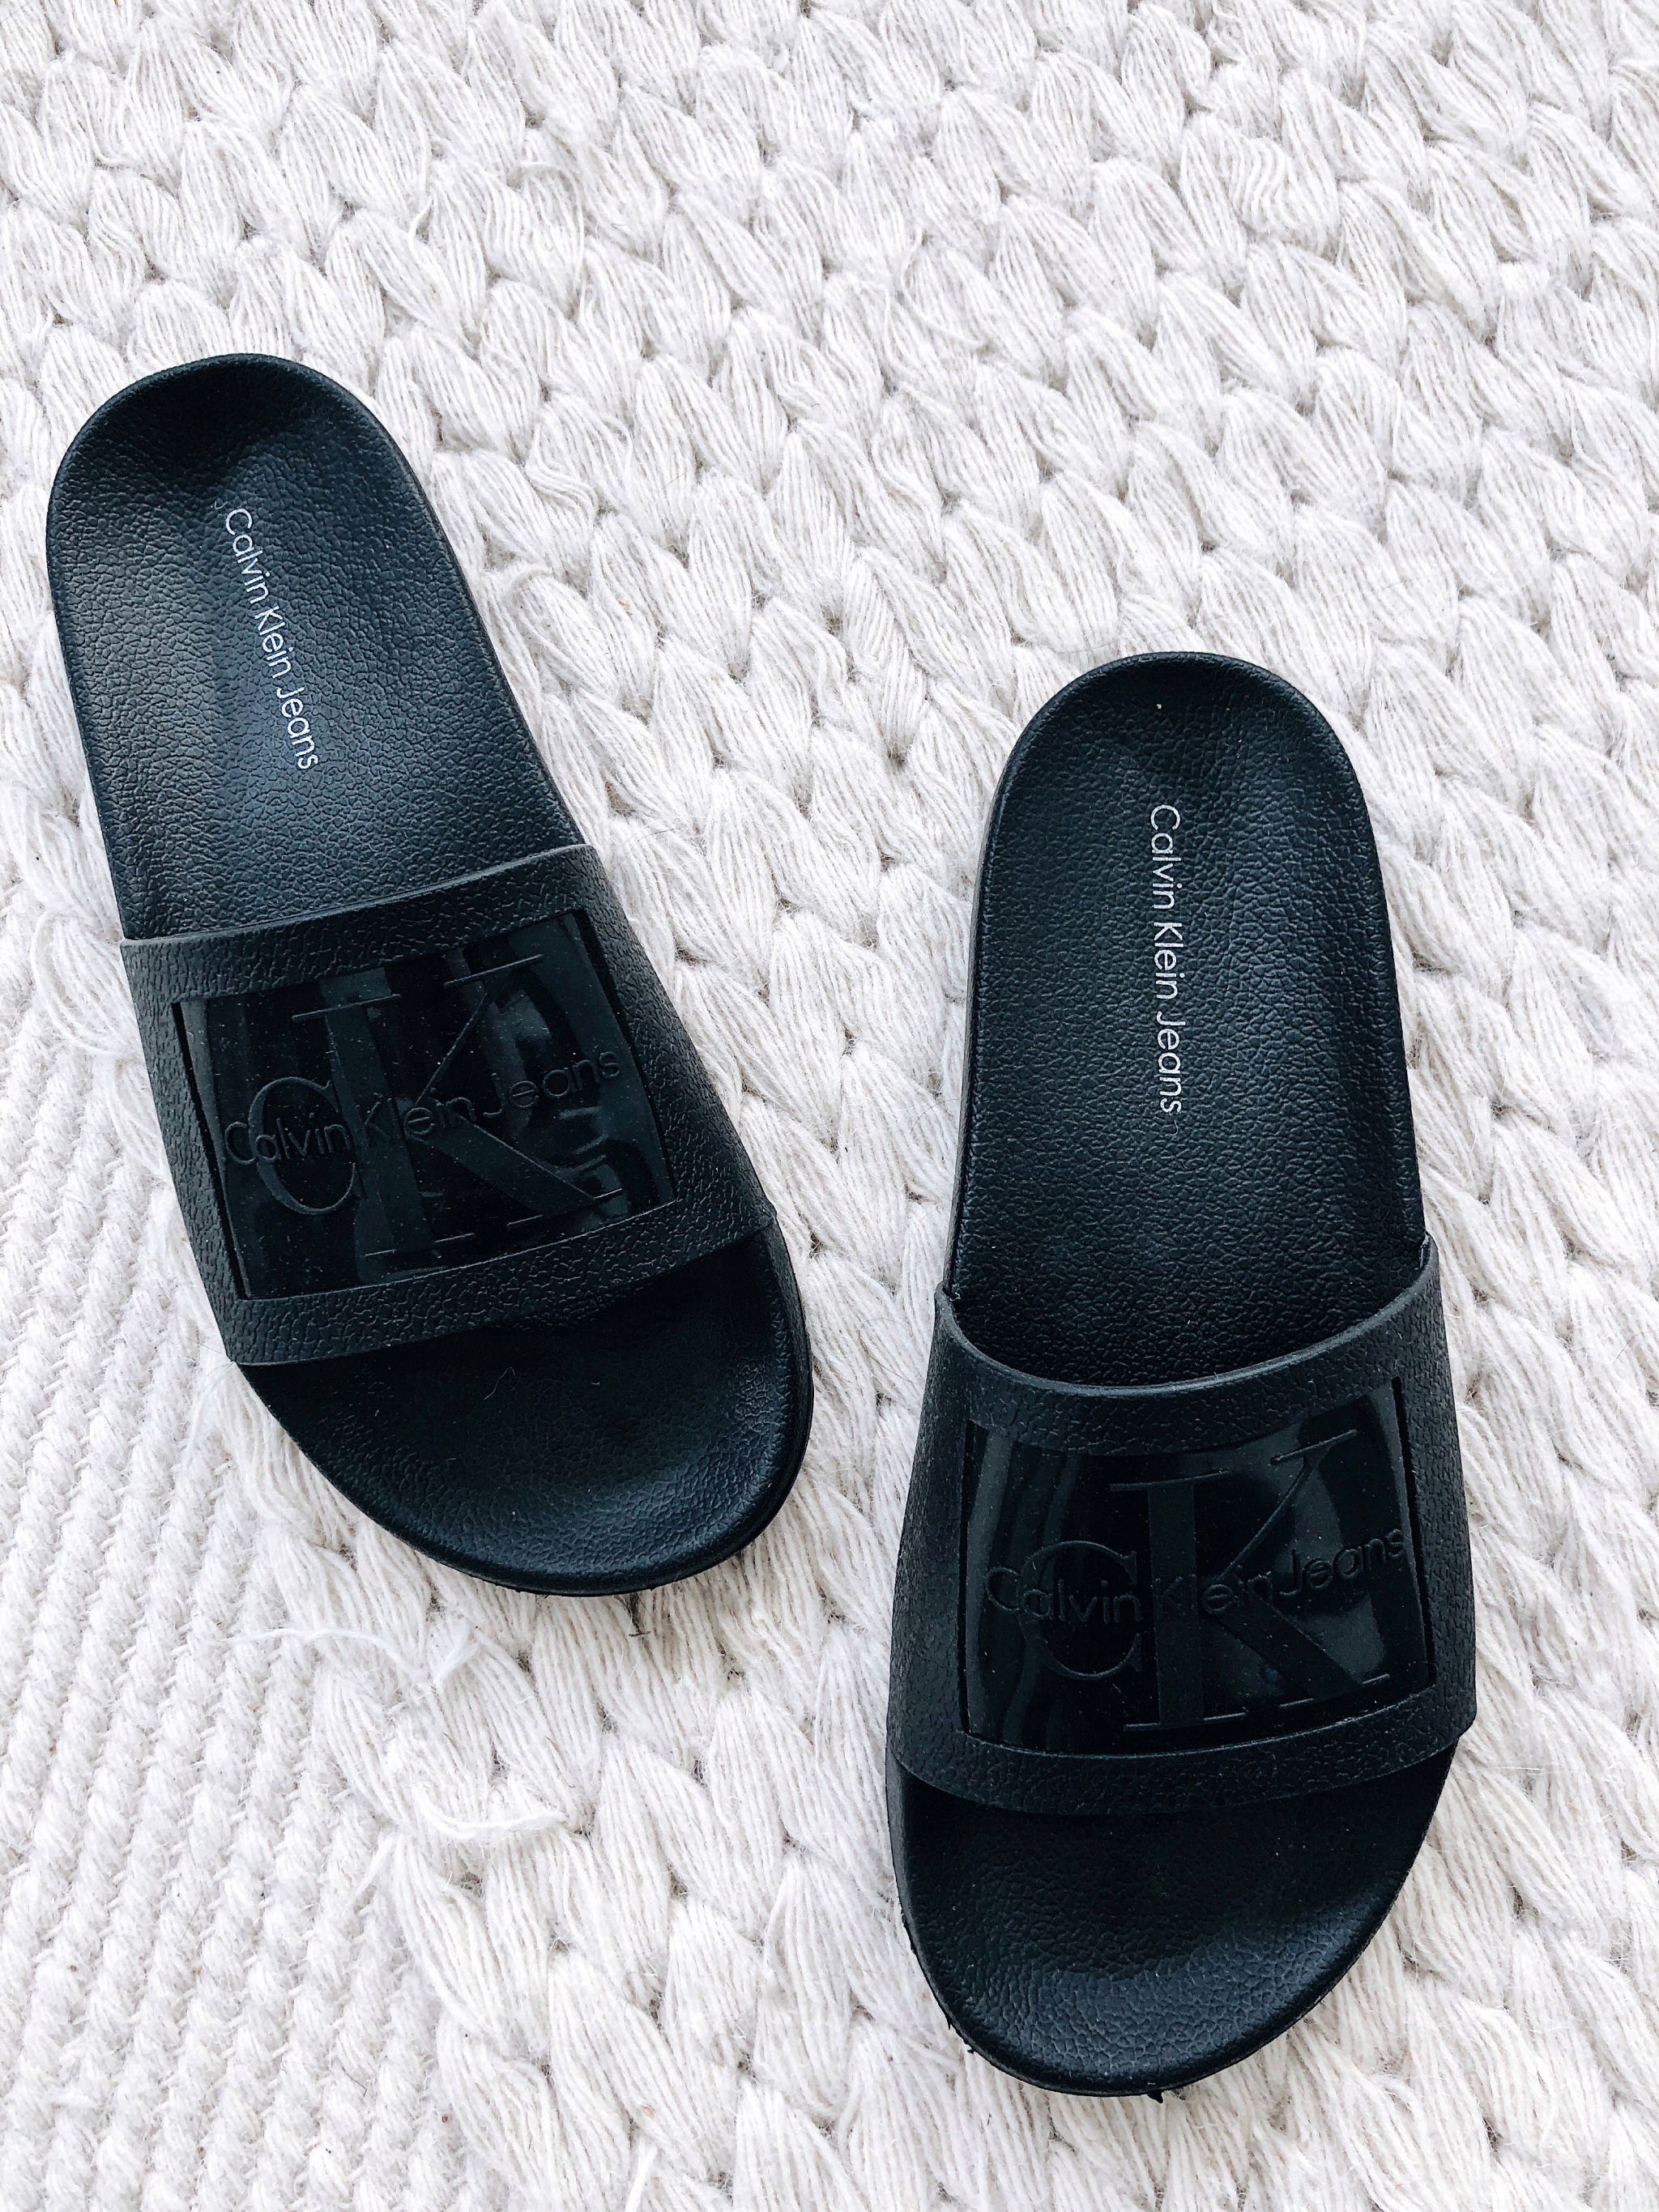 Calvin Klein black slides